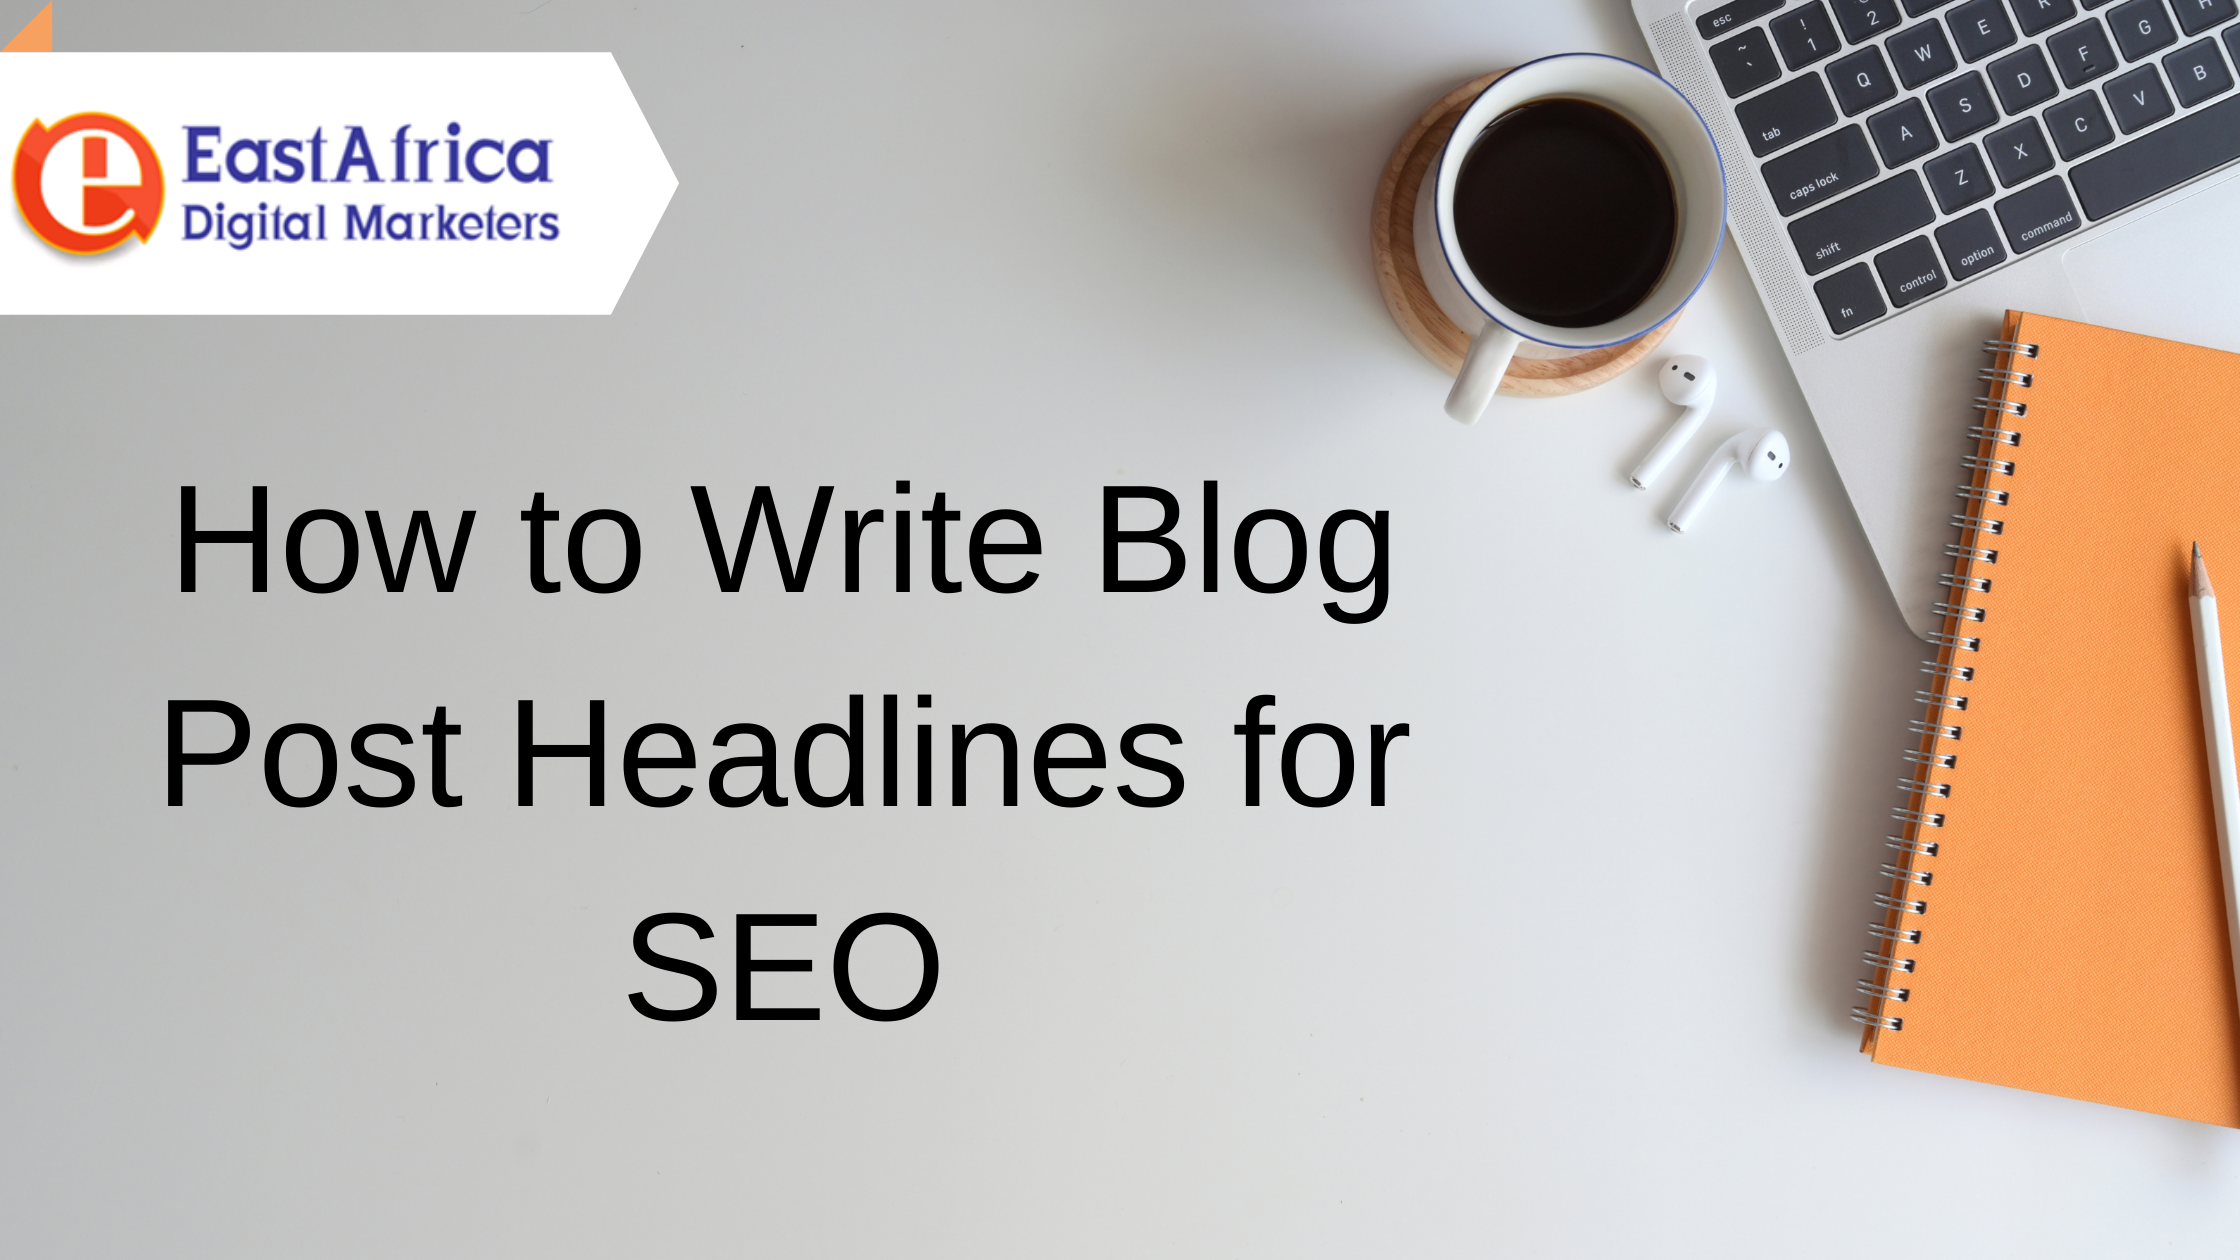 How to Write Blog Post Headlines for SEO